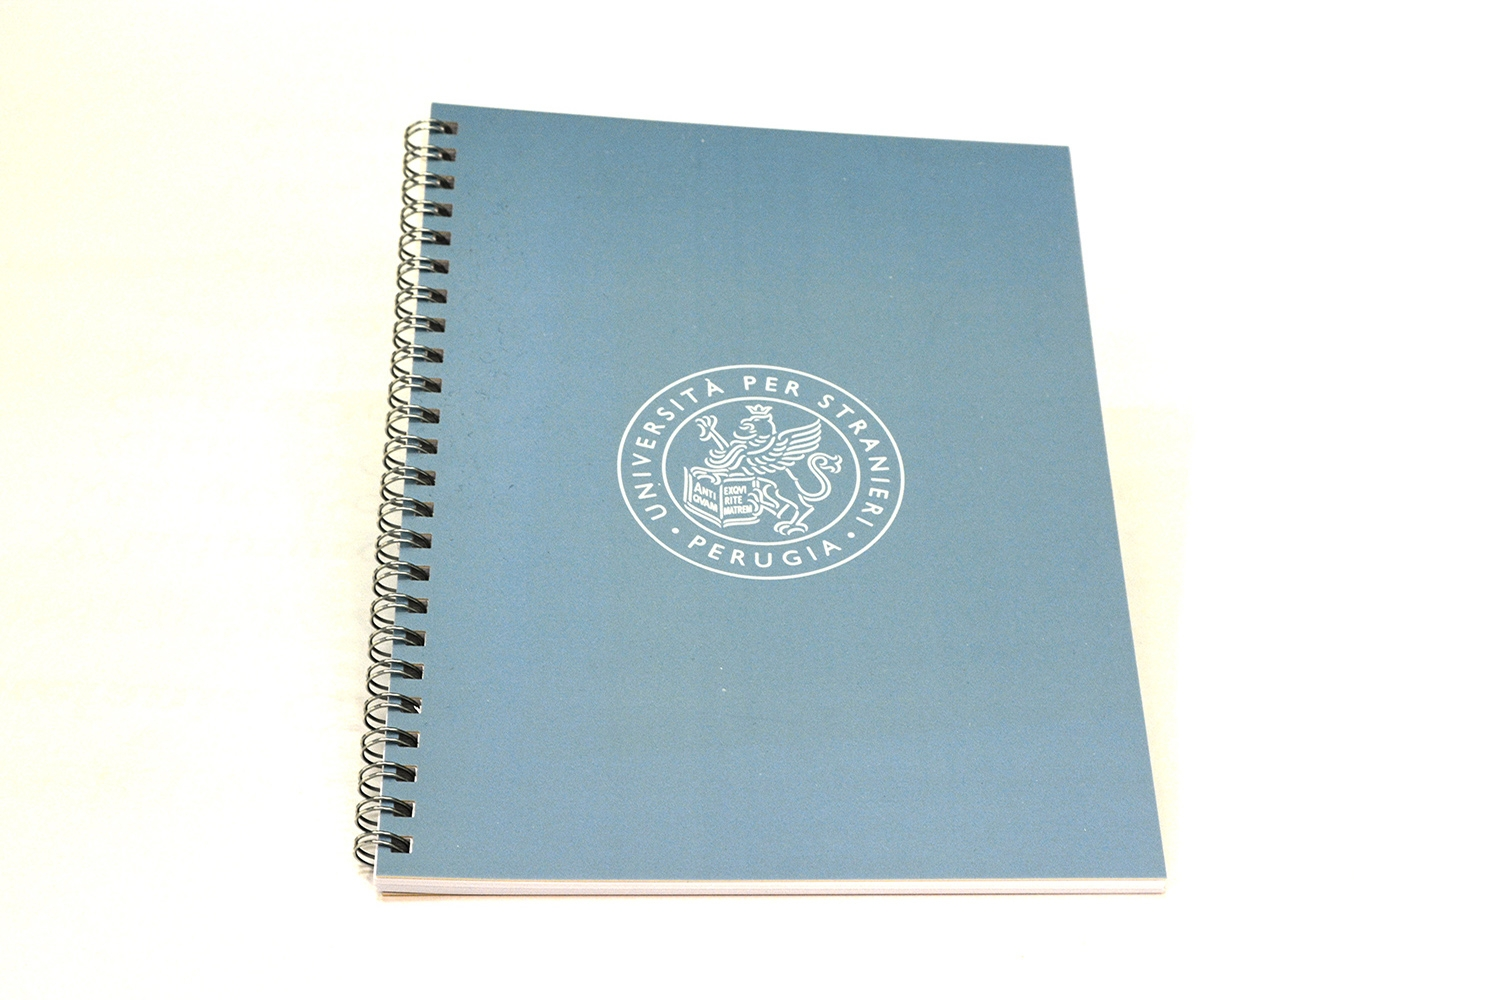 NOTEBOOK WITH SPIRAL